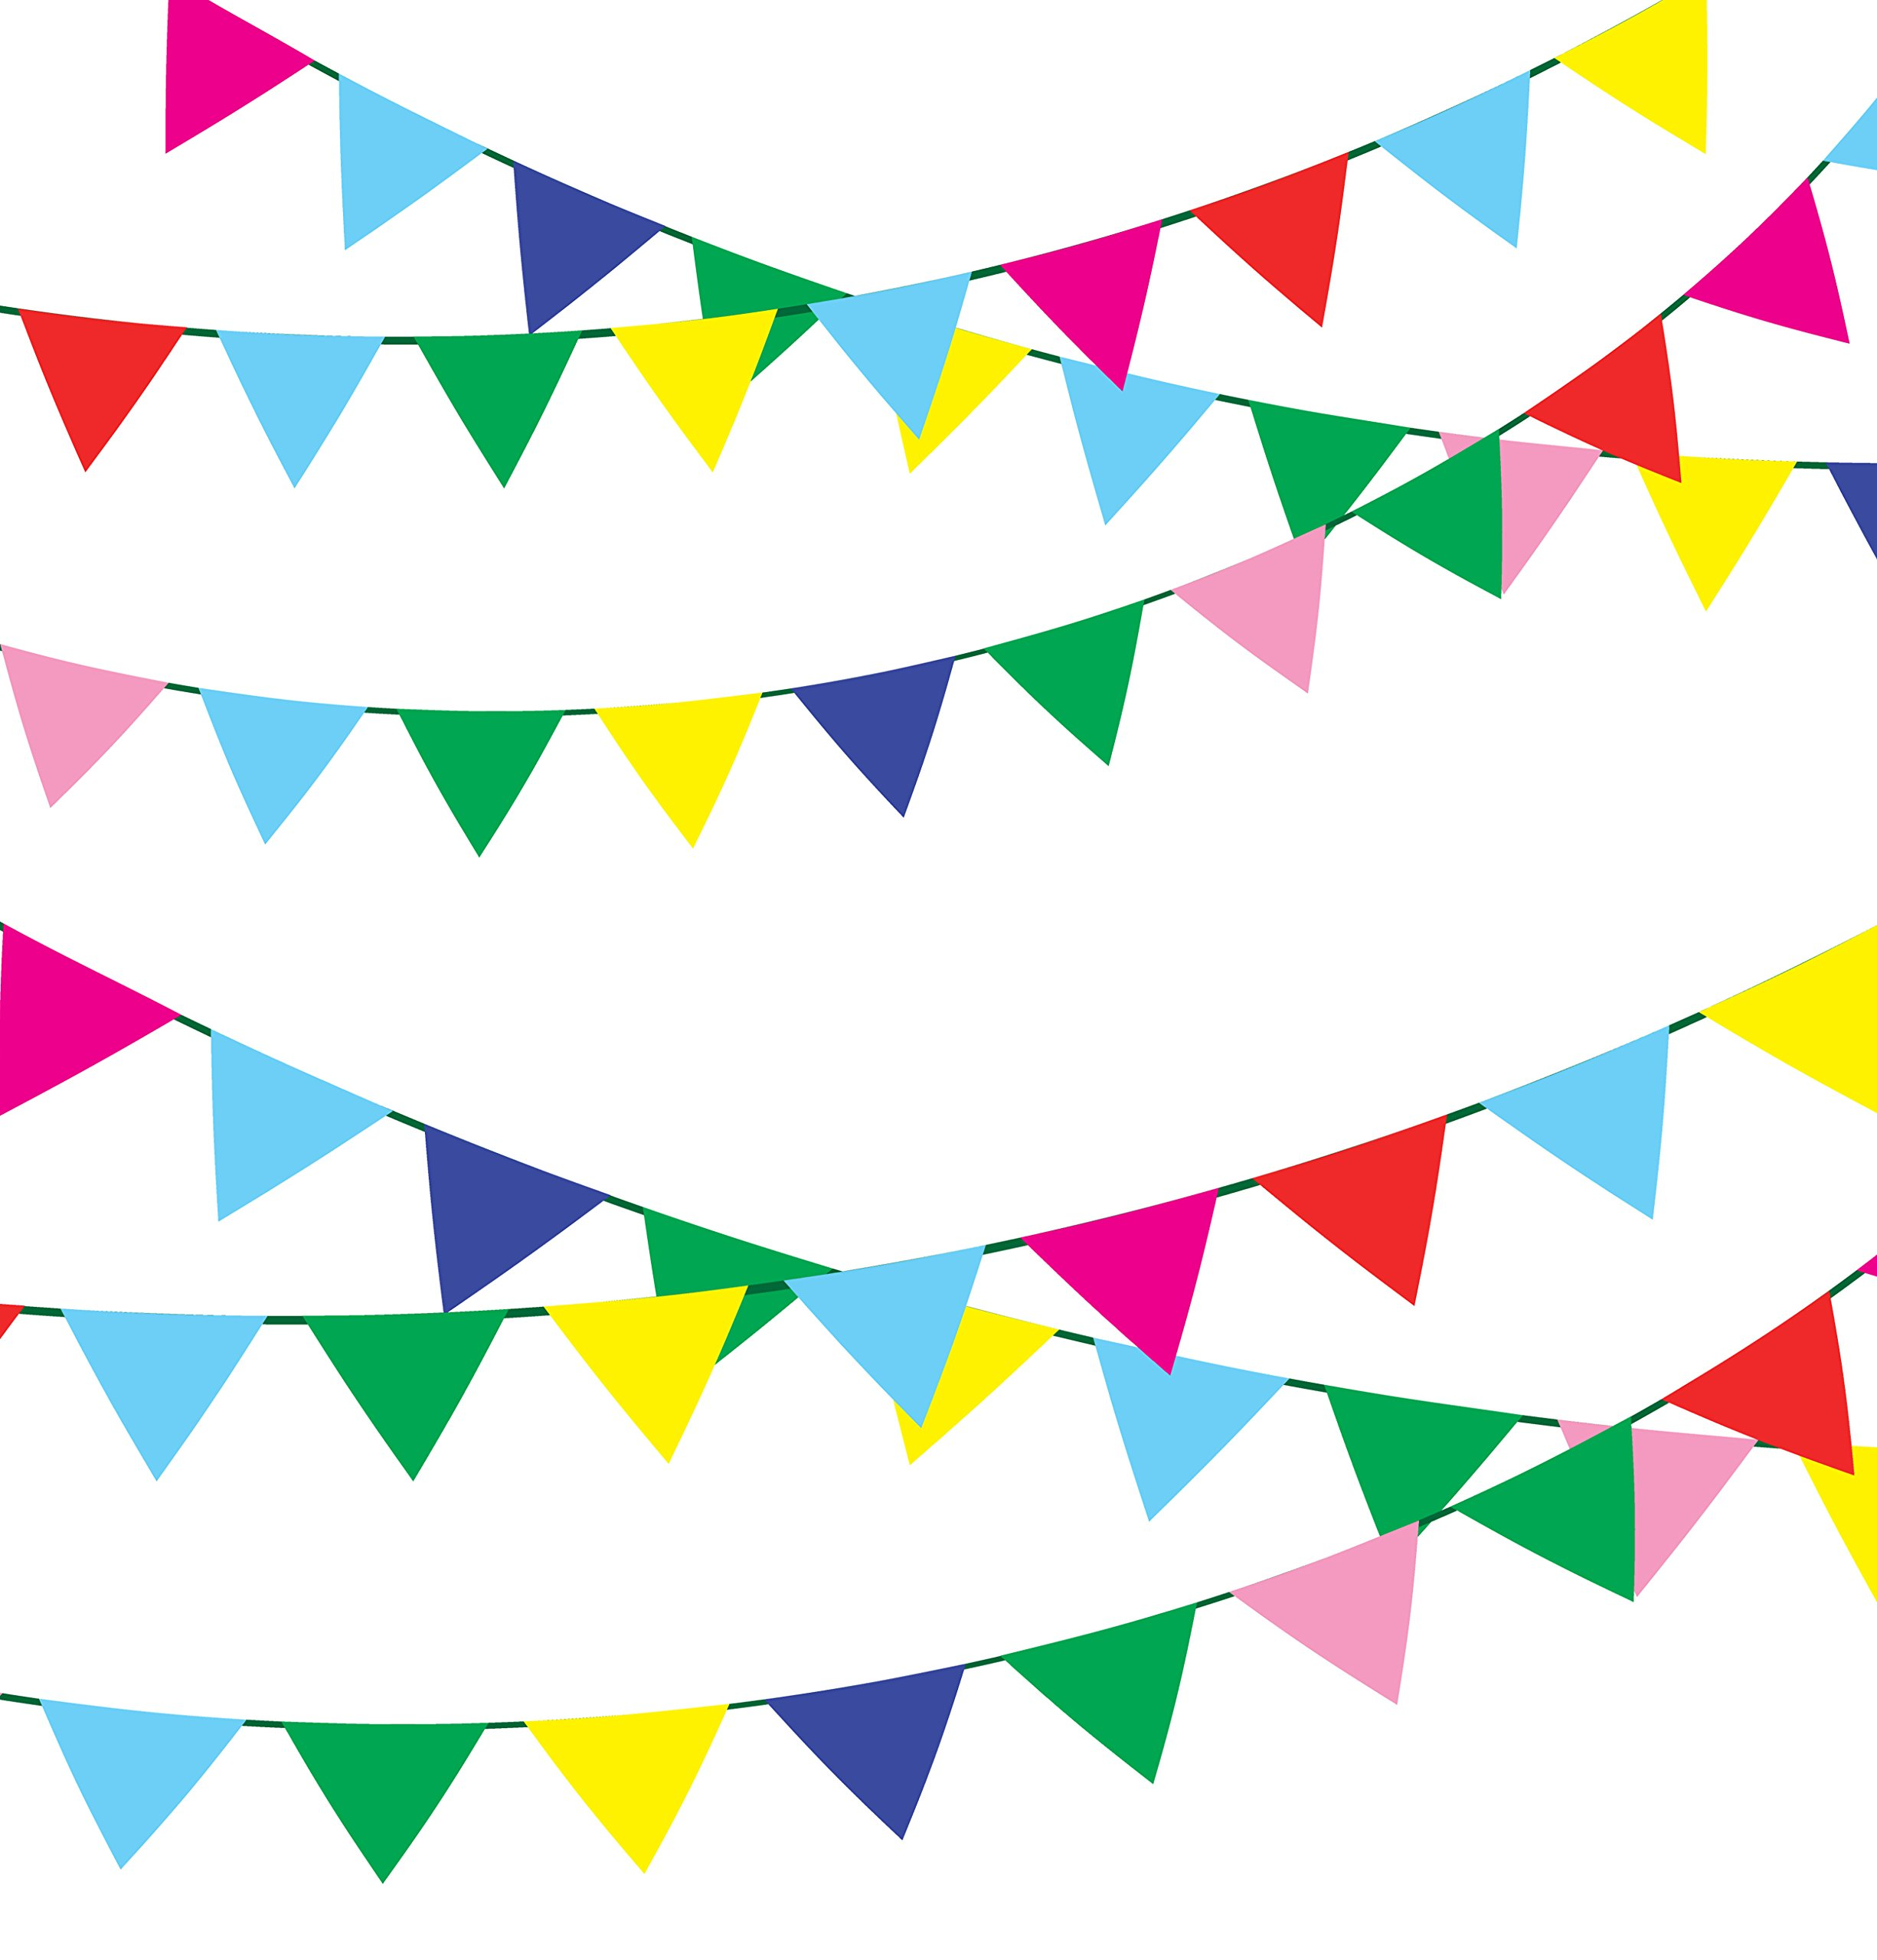 TSMD 750 Ft Multicolor Pennant Banners String Flag Banner, 600Pcs Nylon Fabric Pennant Flags For Grand Opening ,Party Festivals Decorations